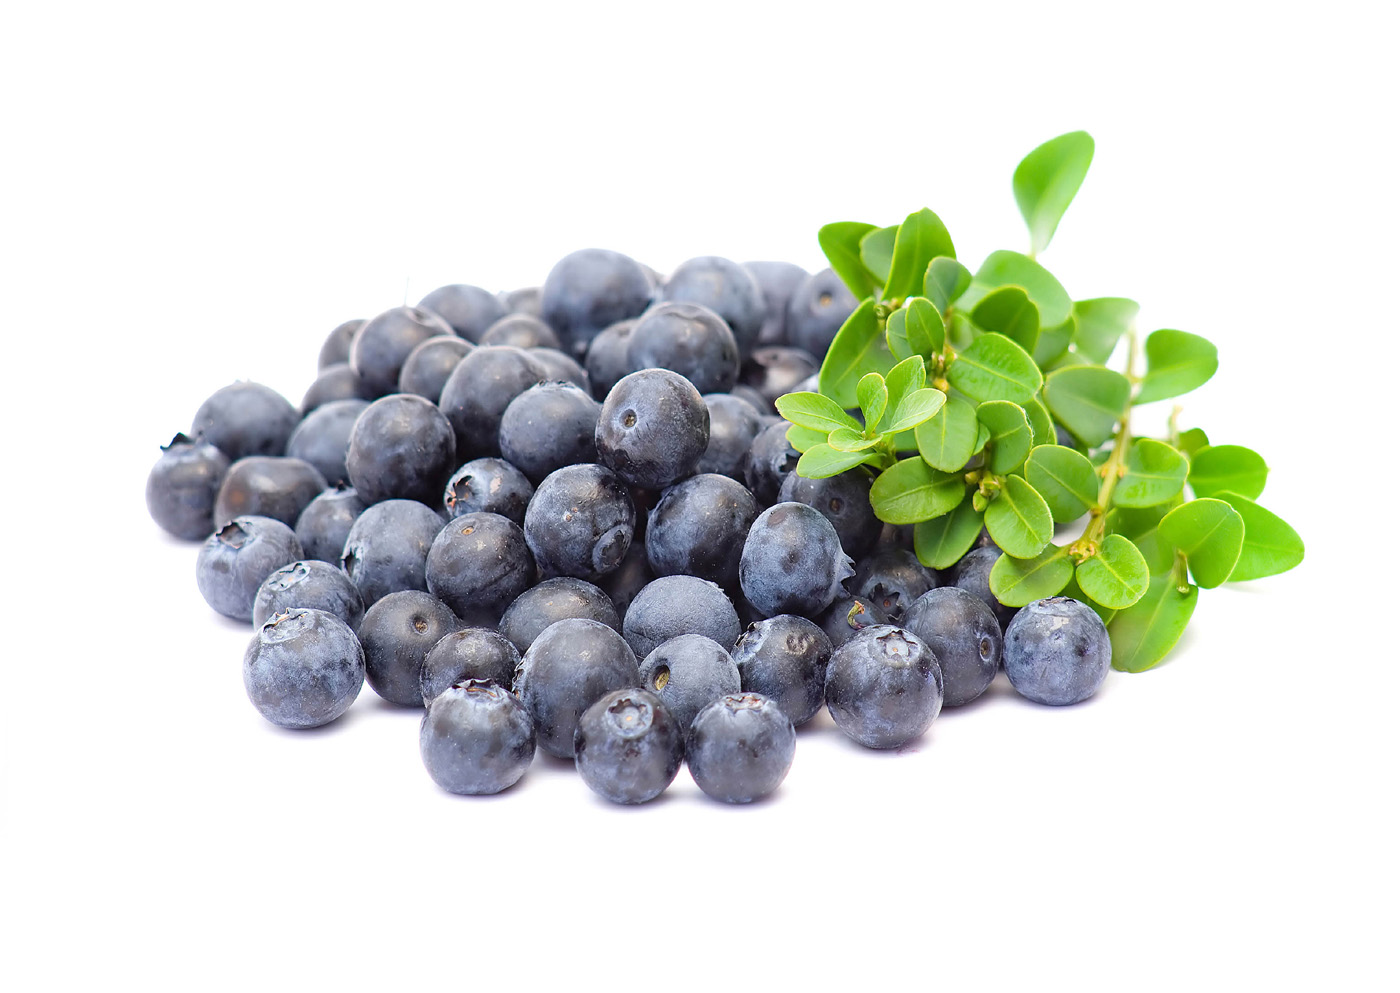 Blueberries 29961